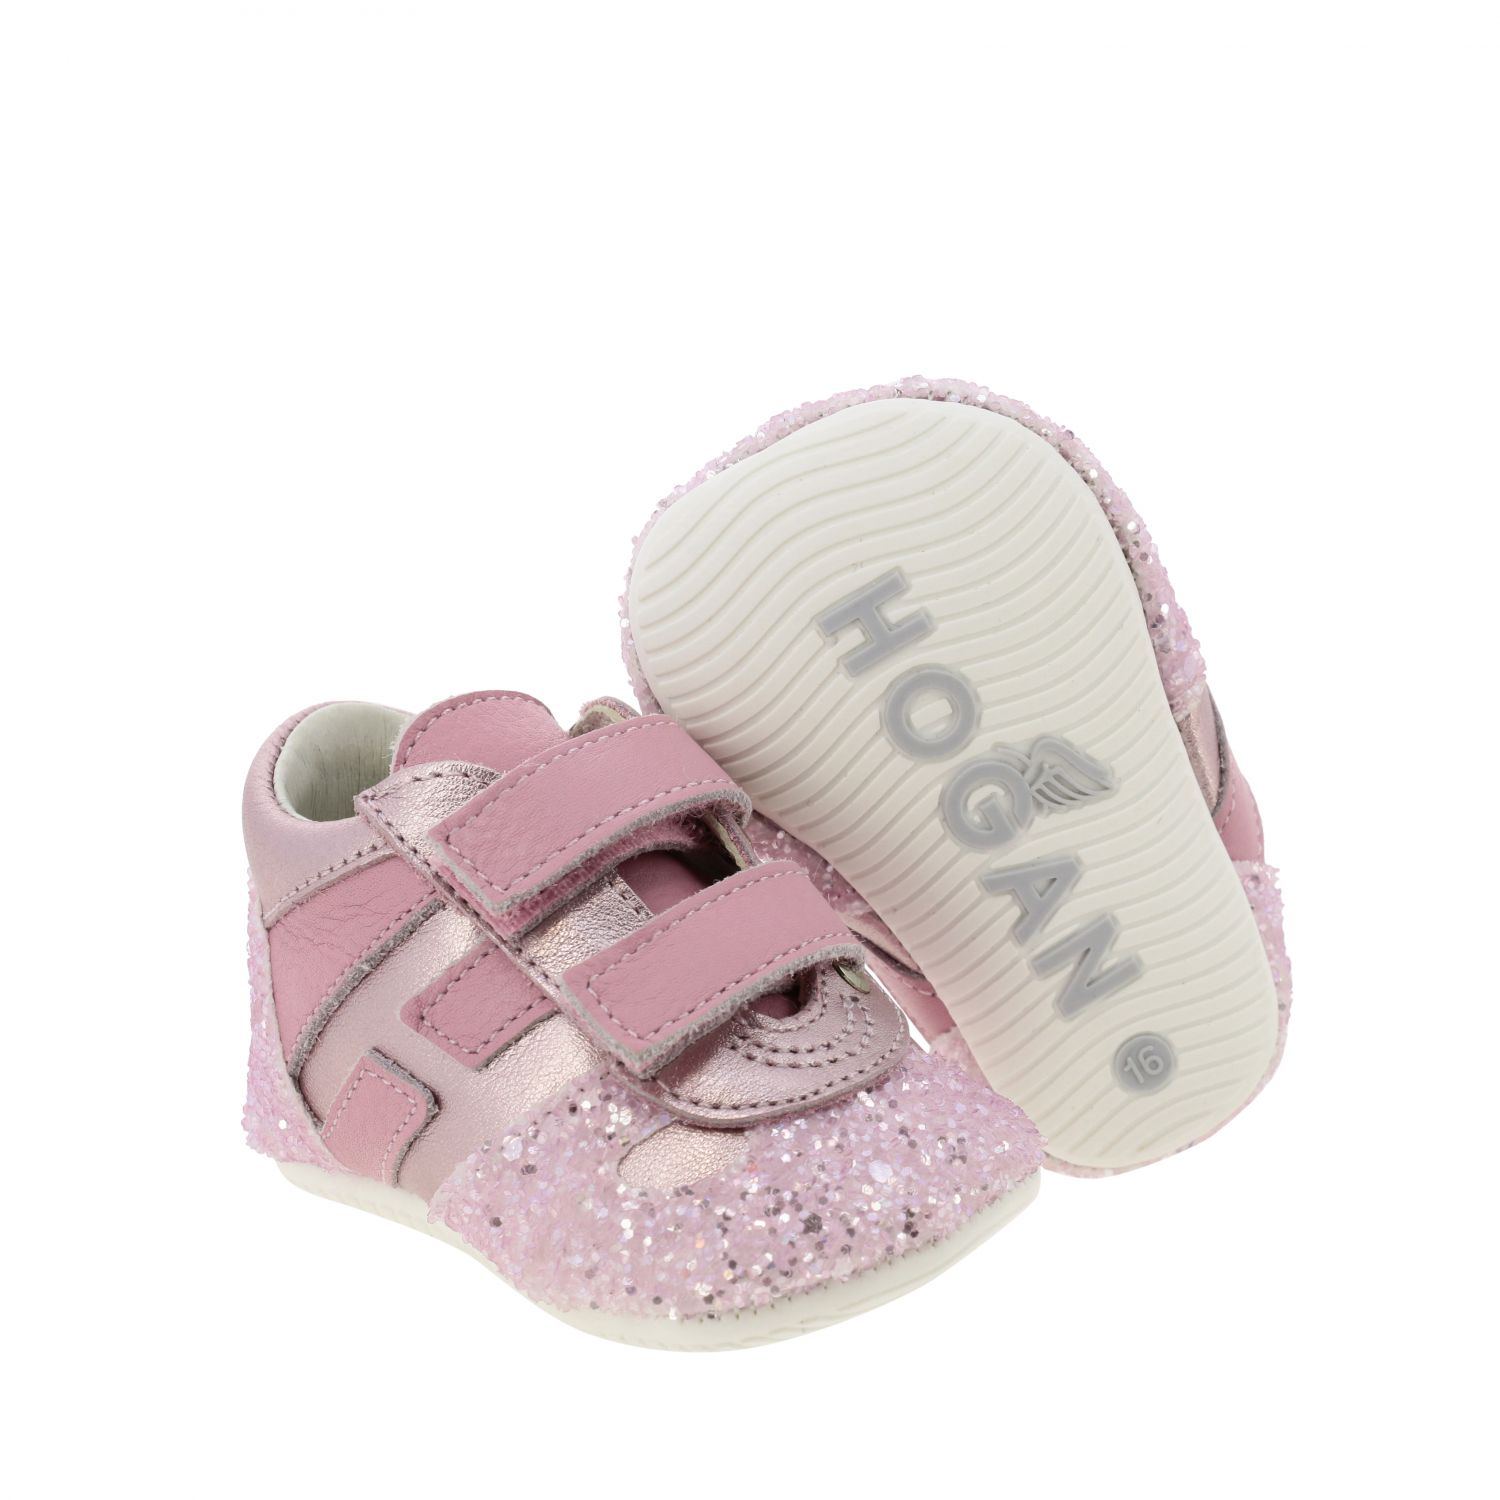 Olympia Hogan laminated leather and glitter sneakers with Velcro straps pink 2